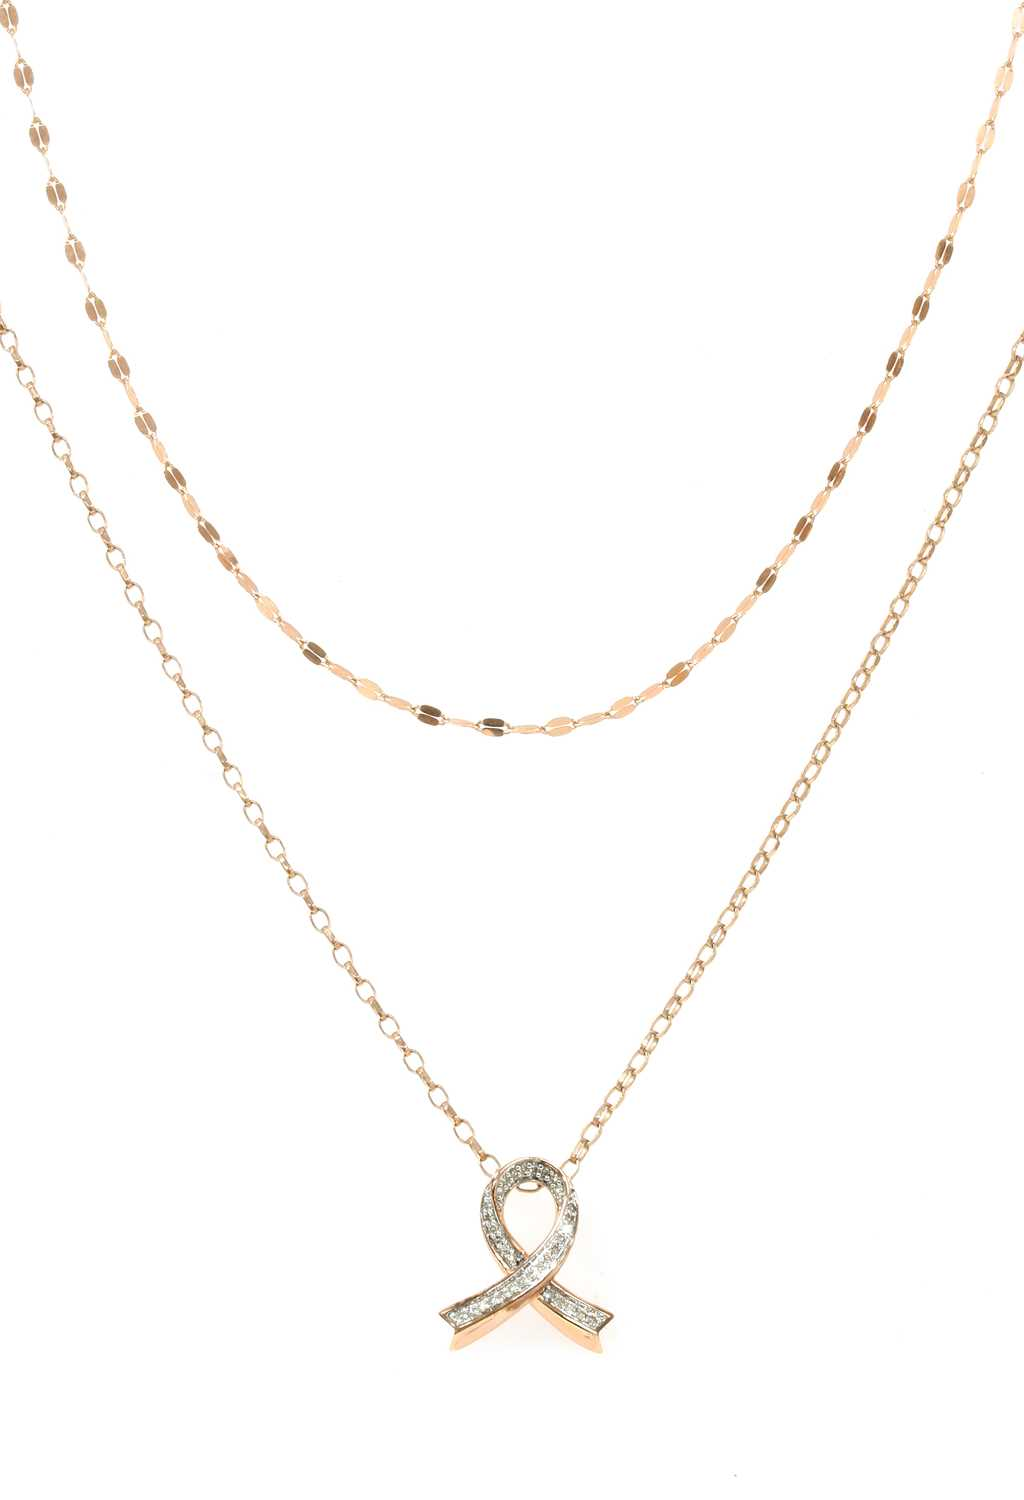 Lot 73 - An 18ct rose gold chain